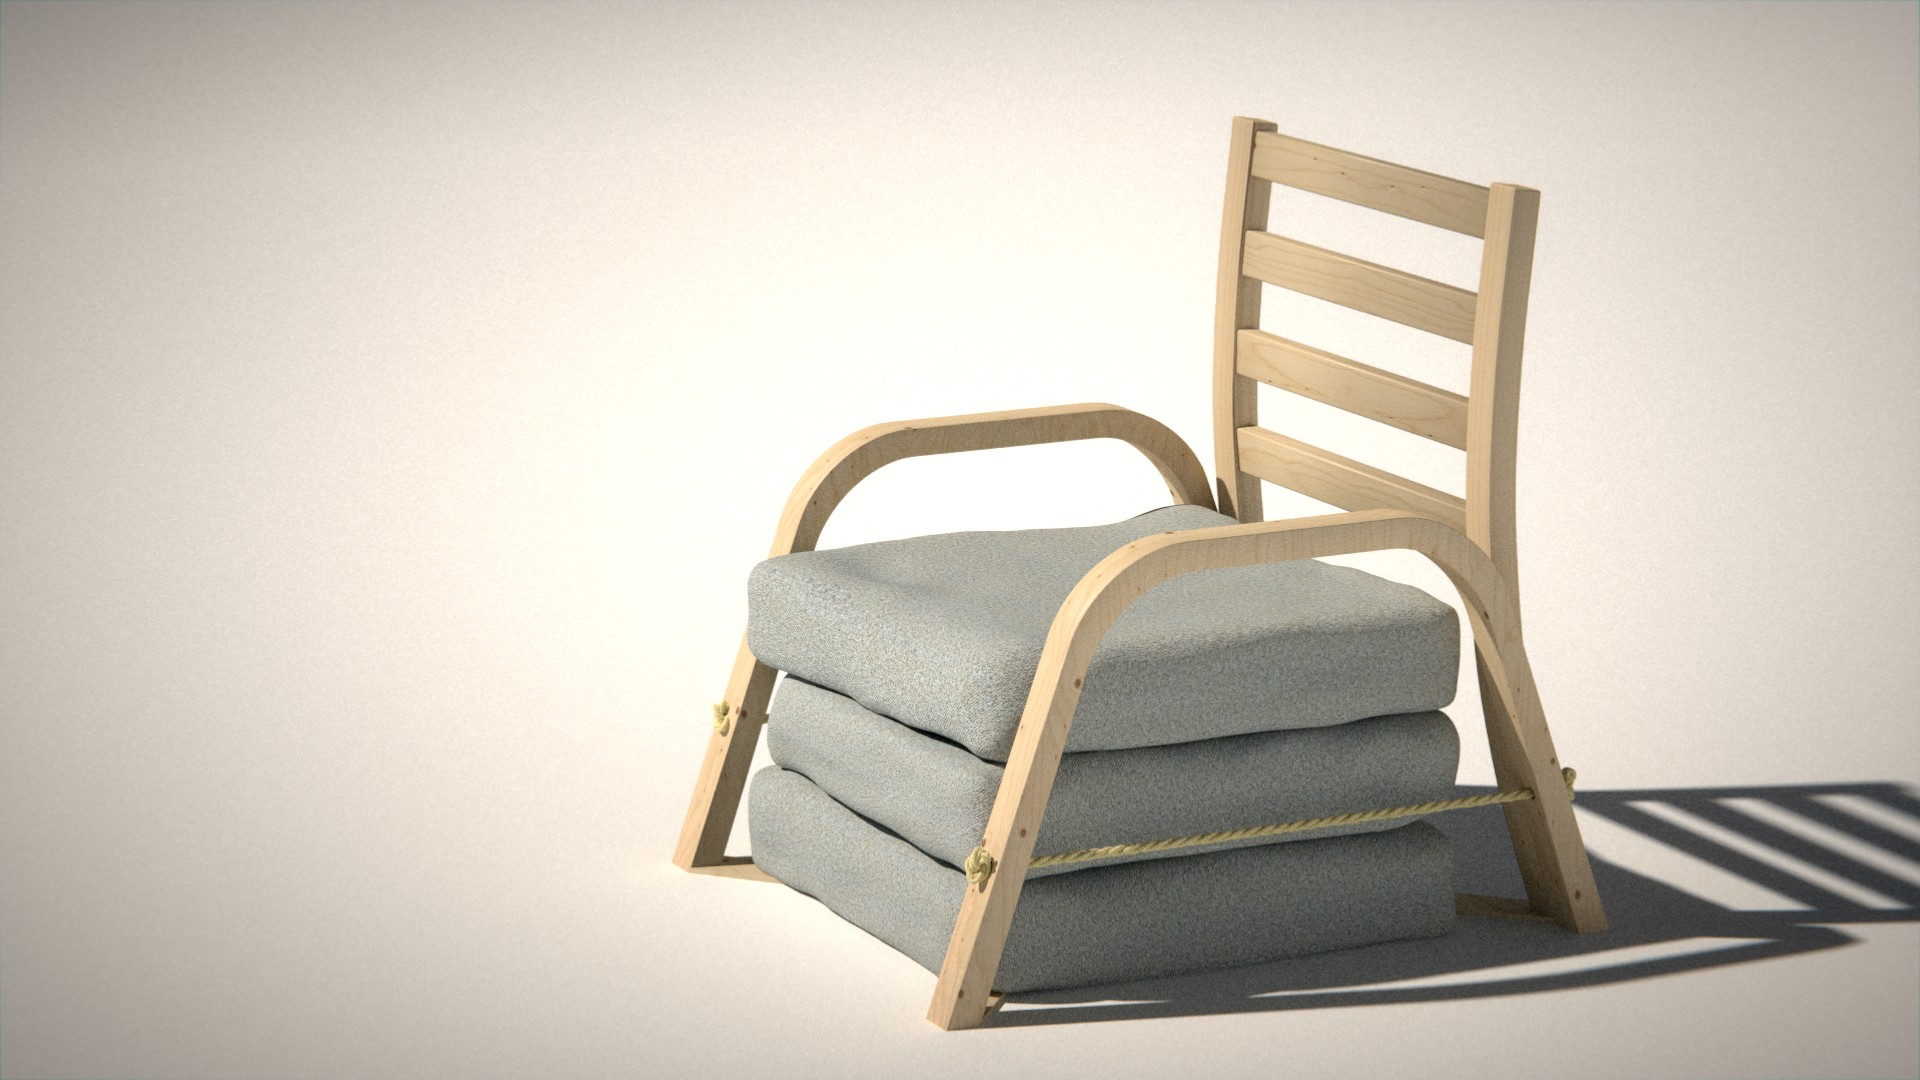 Awe Inspiring Chair Bed Works In Progress Blender Artists Community Pabps2019 Chair Design Images Pabps2019Com